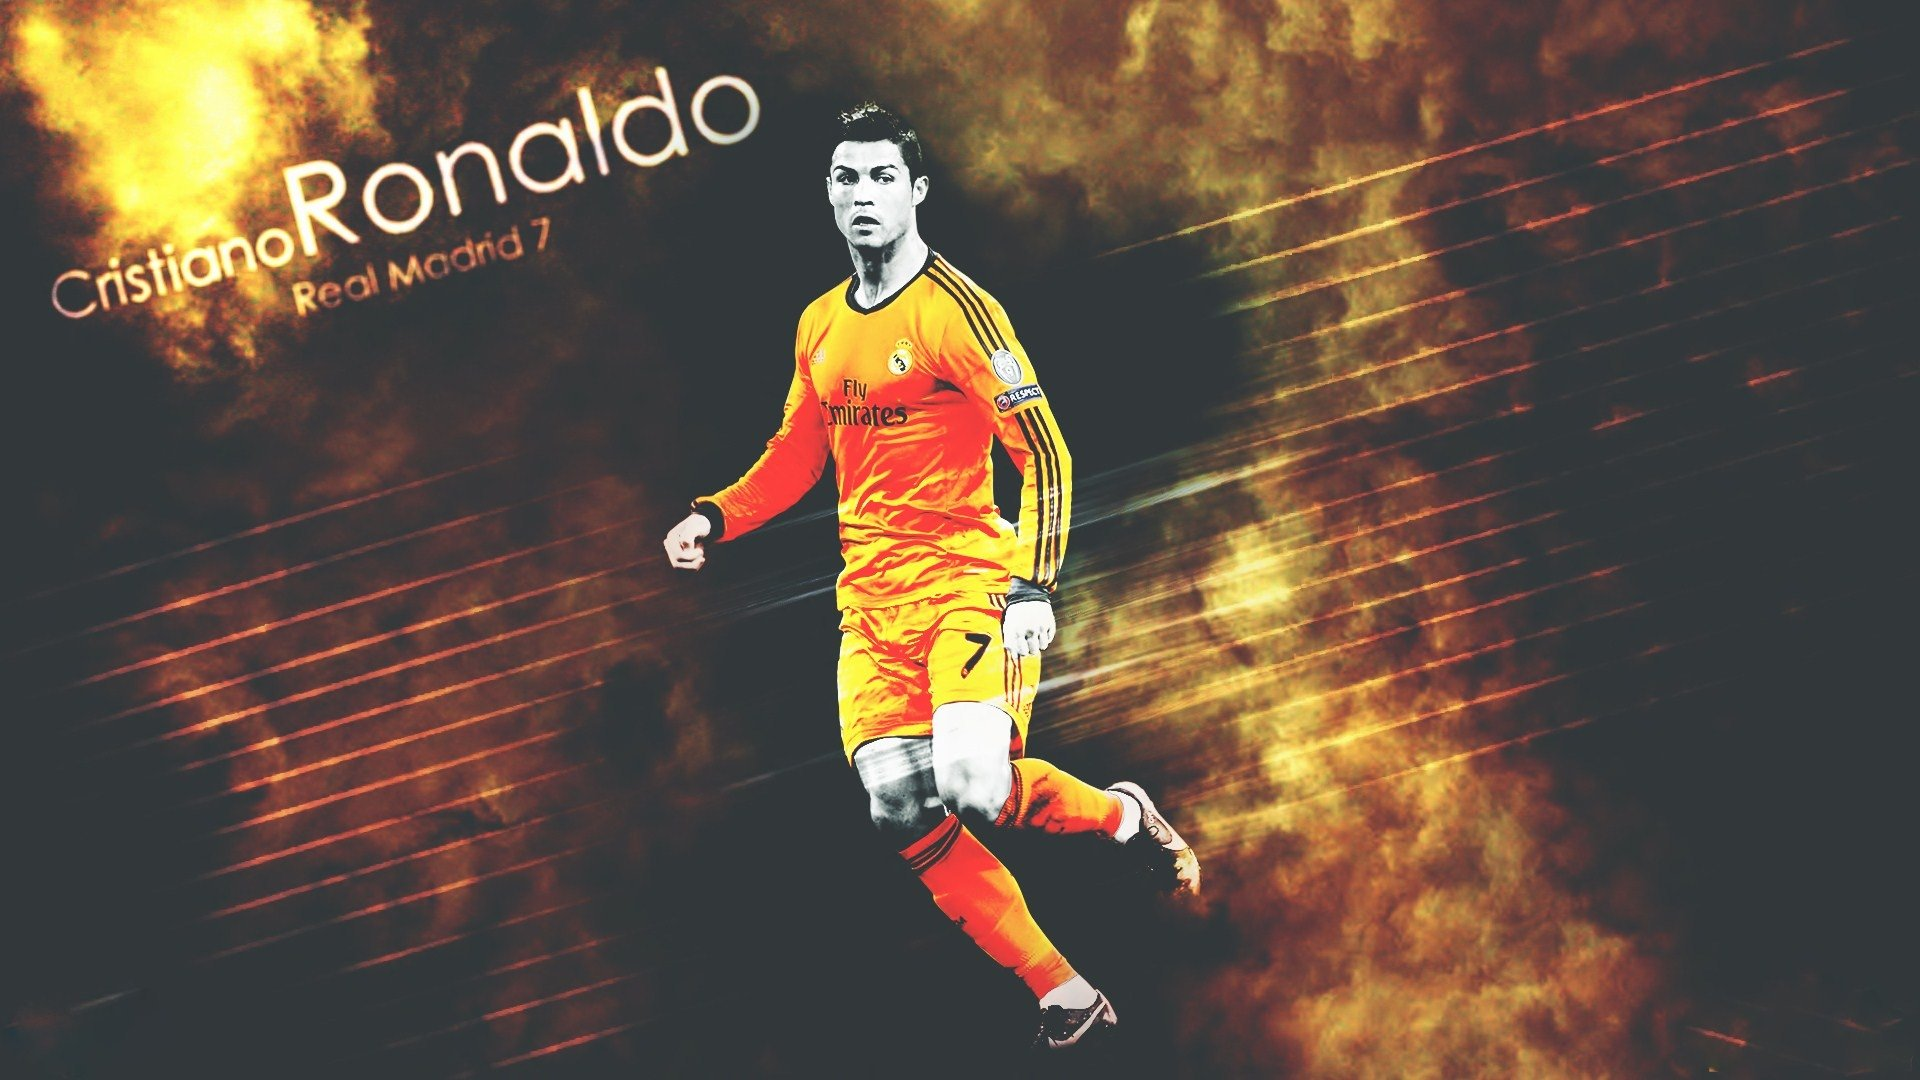 242 Cristiano Ronaldo HD Wallpapers Background Images 1920x1080